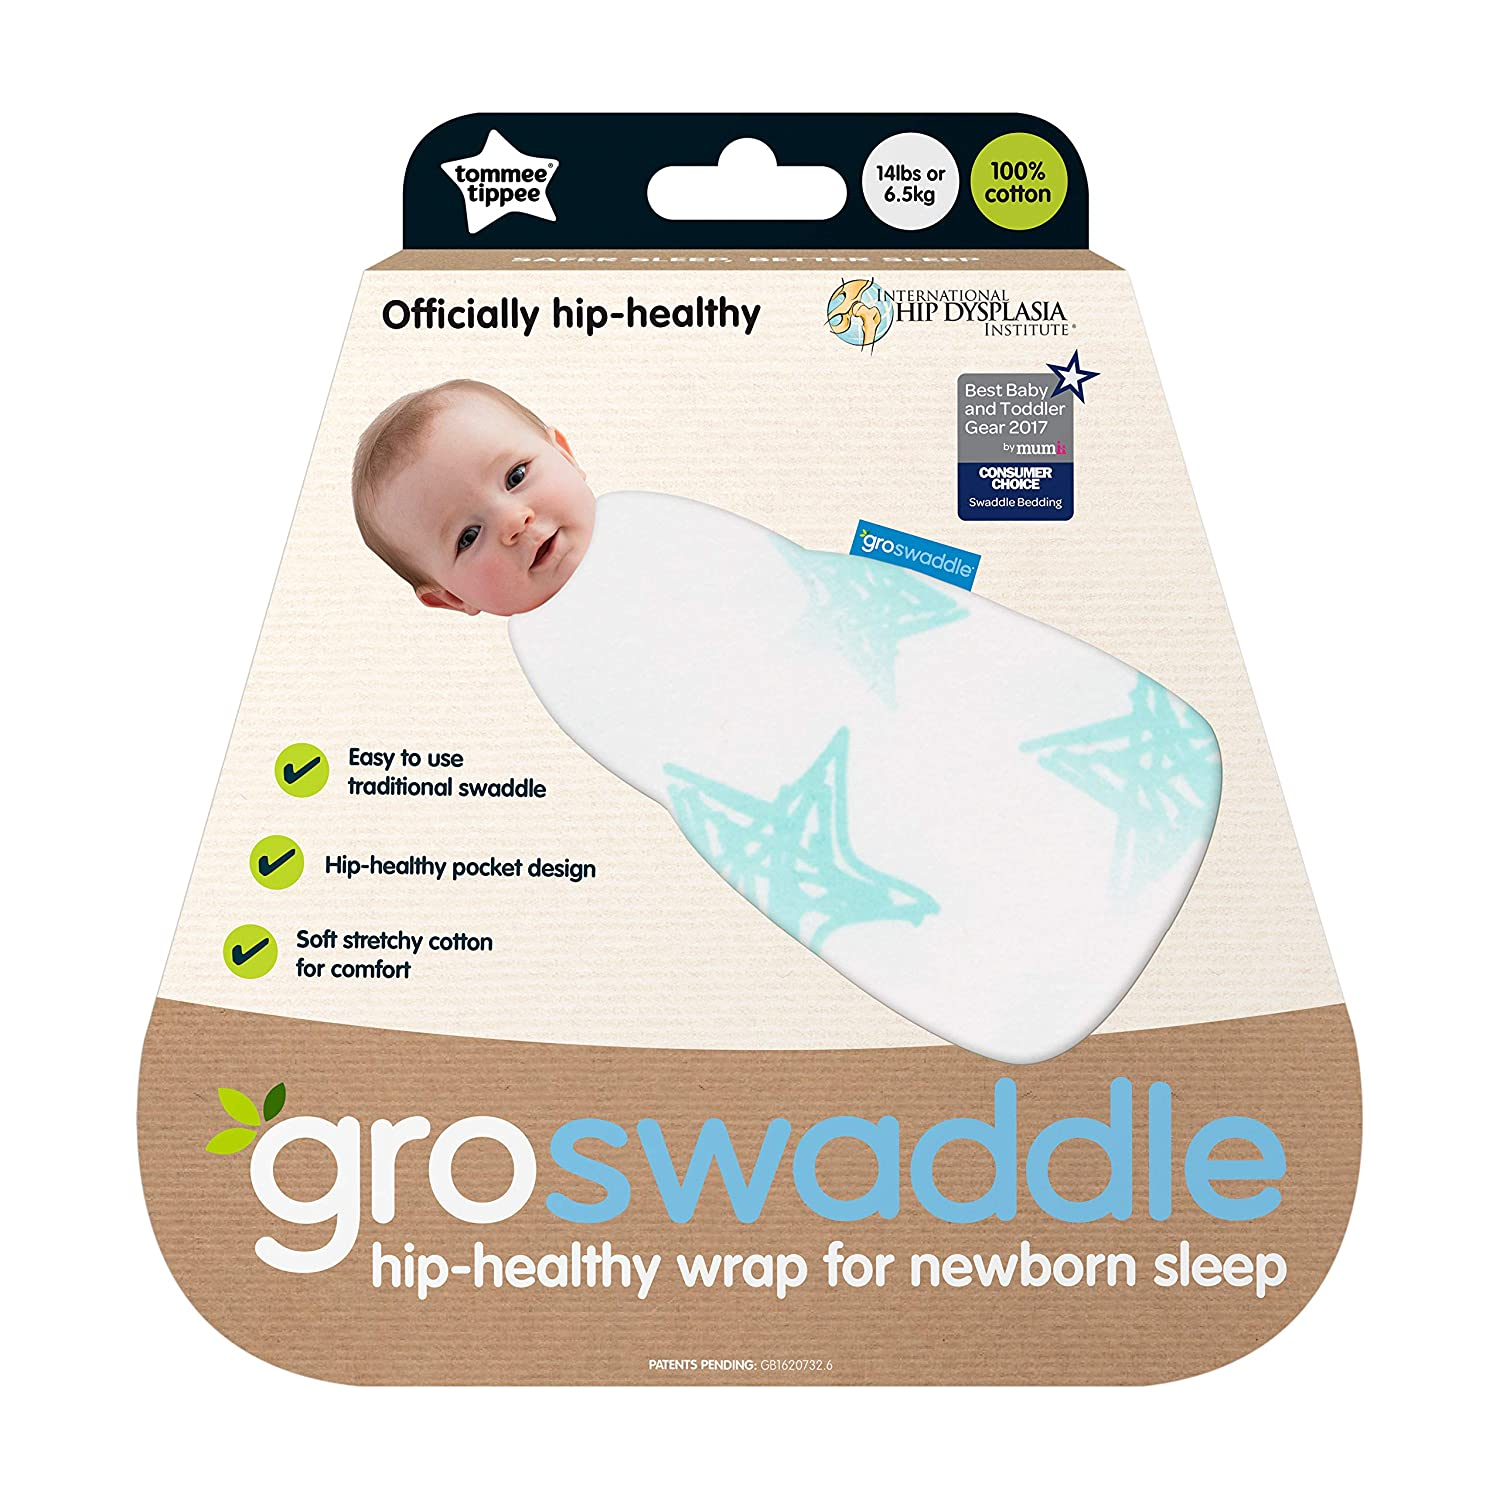 e8546c2af3d Amazon.com  Tommee Tippee Groswaddle Newborn Baby Cotton Hip-Healthy Swaddle  Alternative - Star Bright - Birth to 12lbs